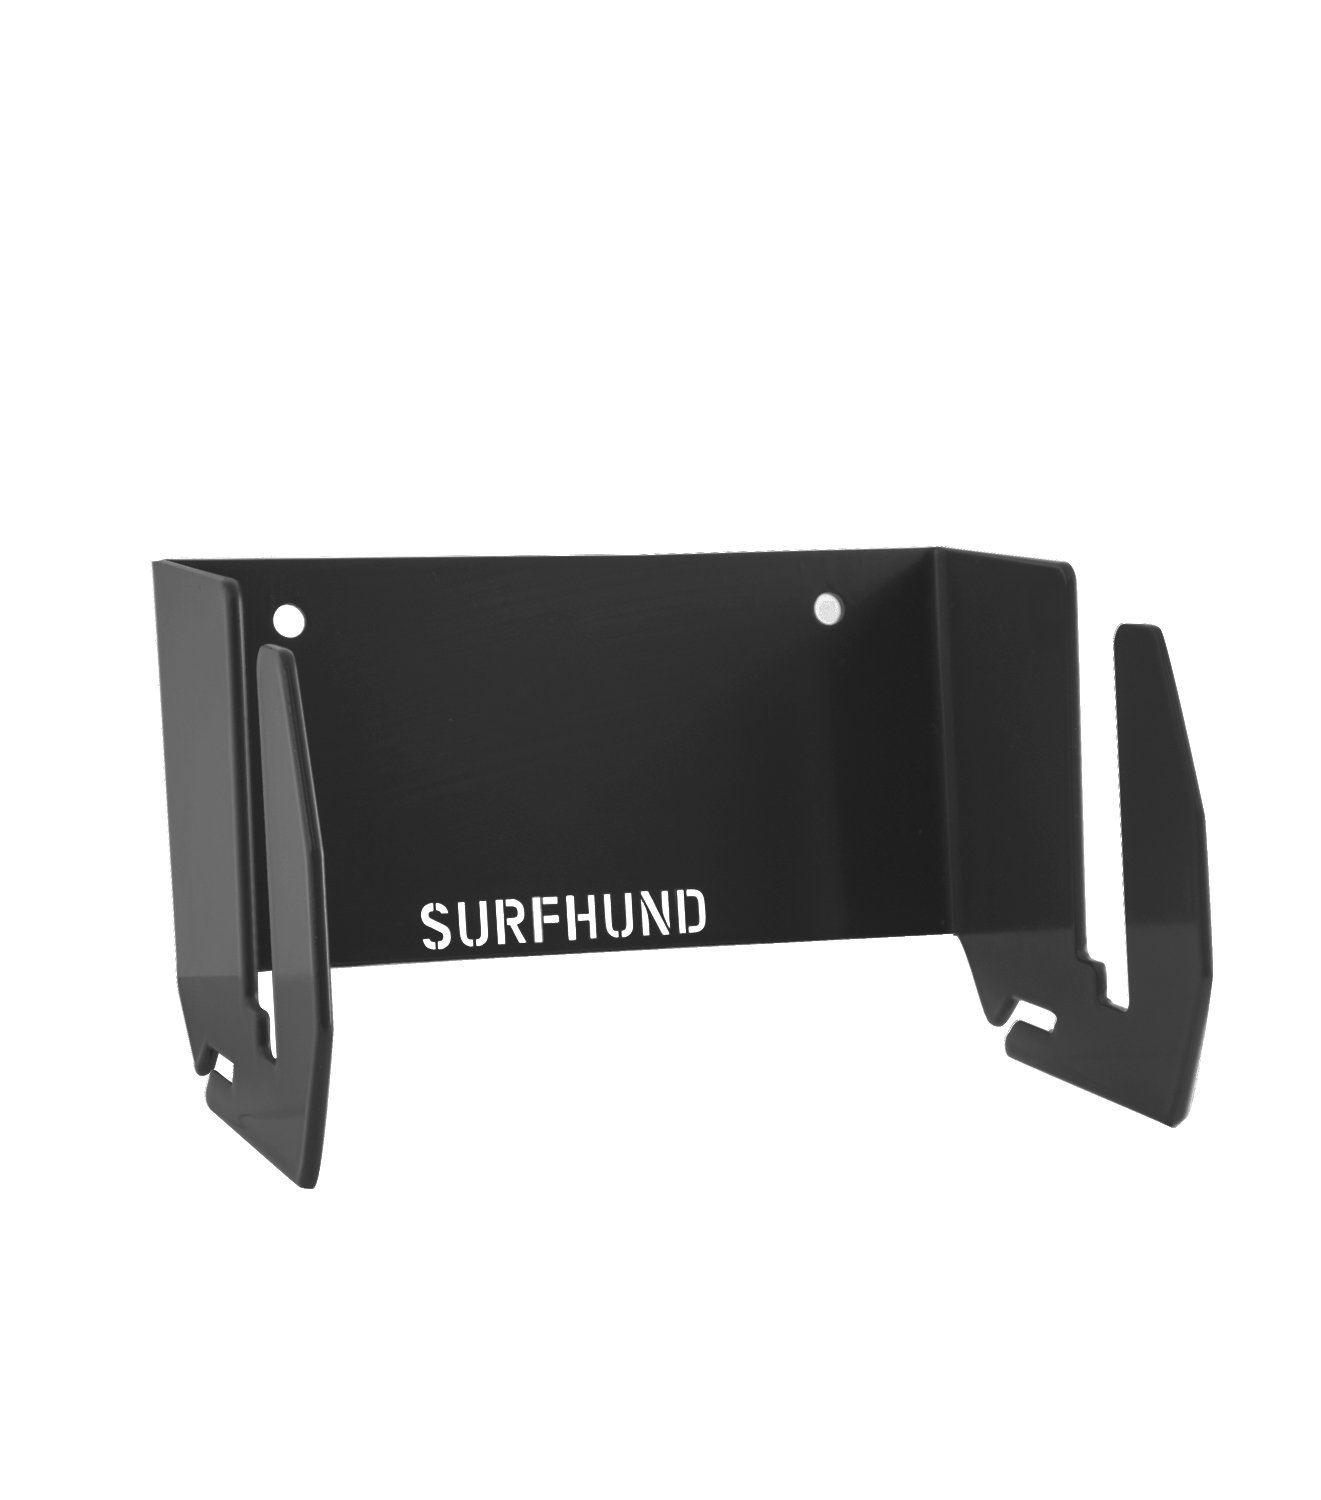 SURFHUND Soporte de pared multi vertical: para longboards skateboards y kiteboards negro